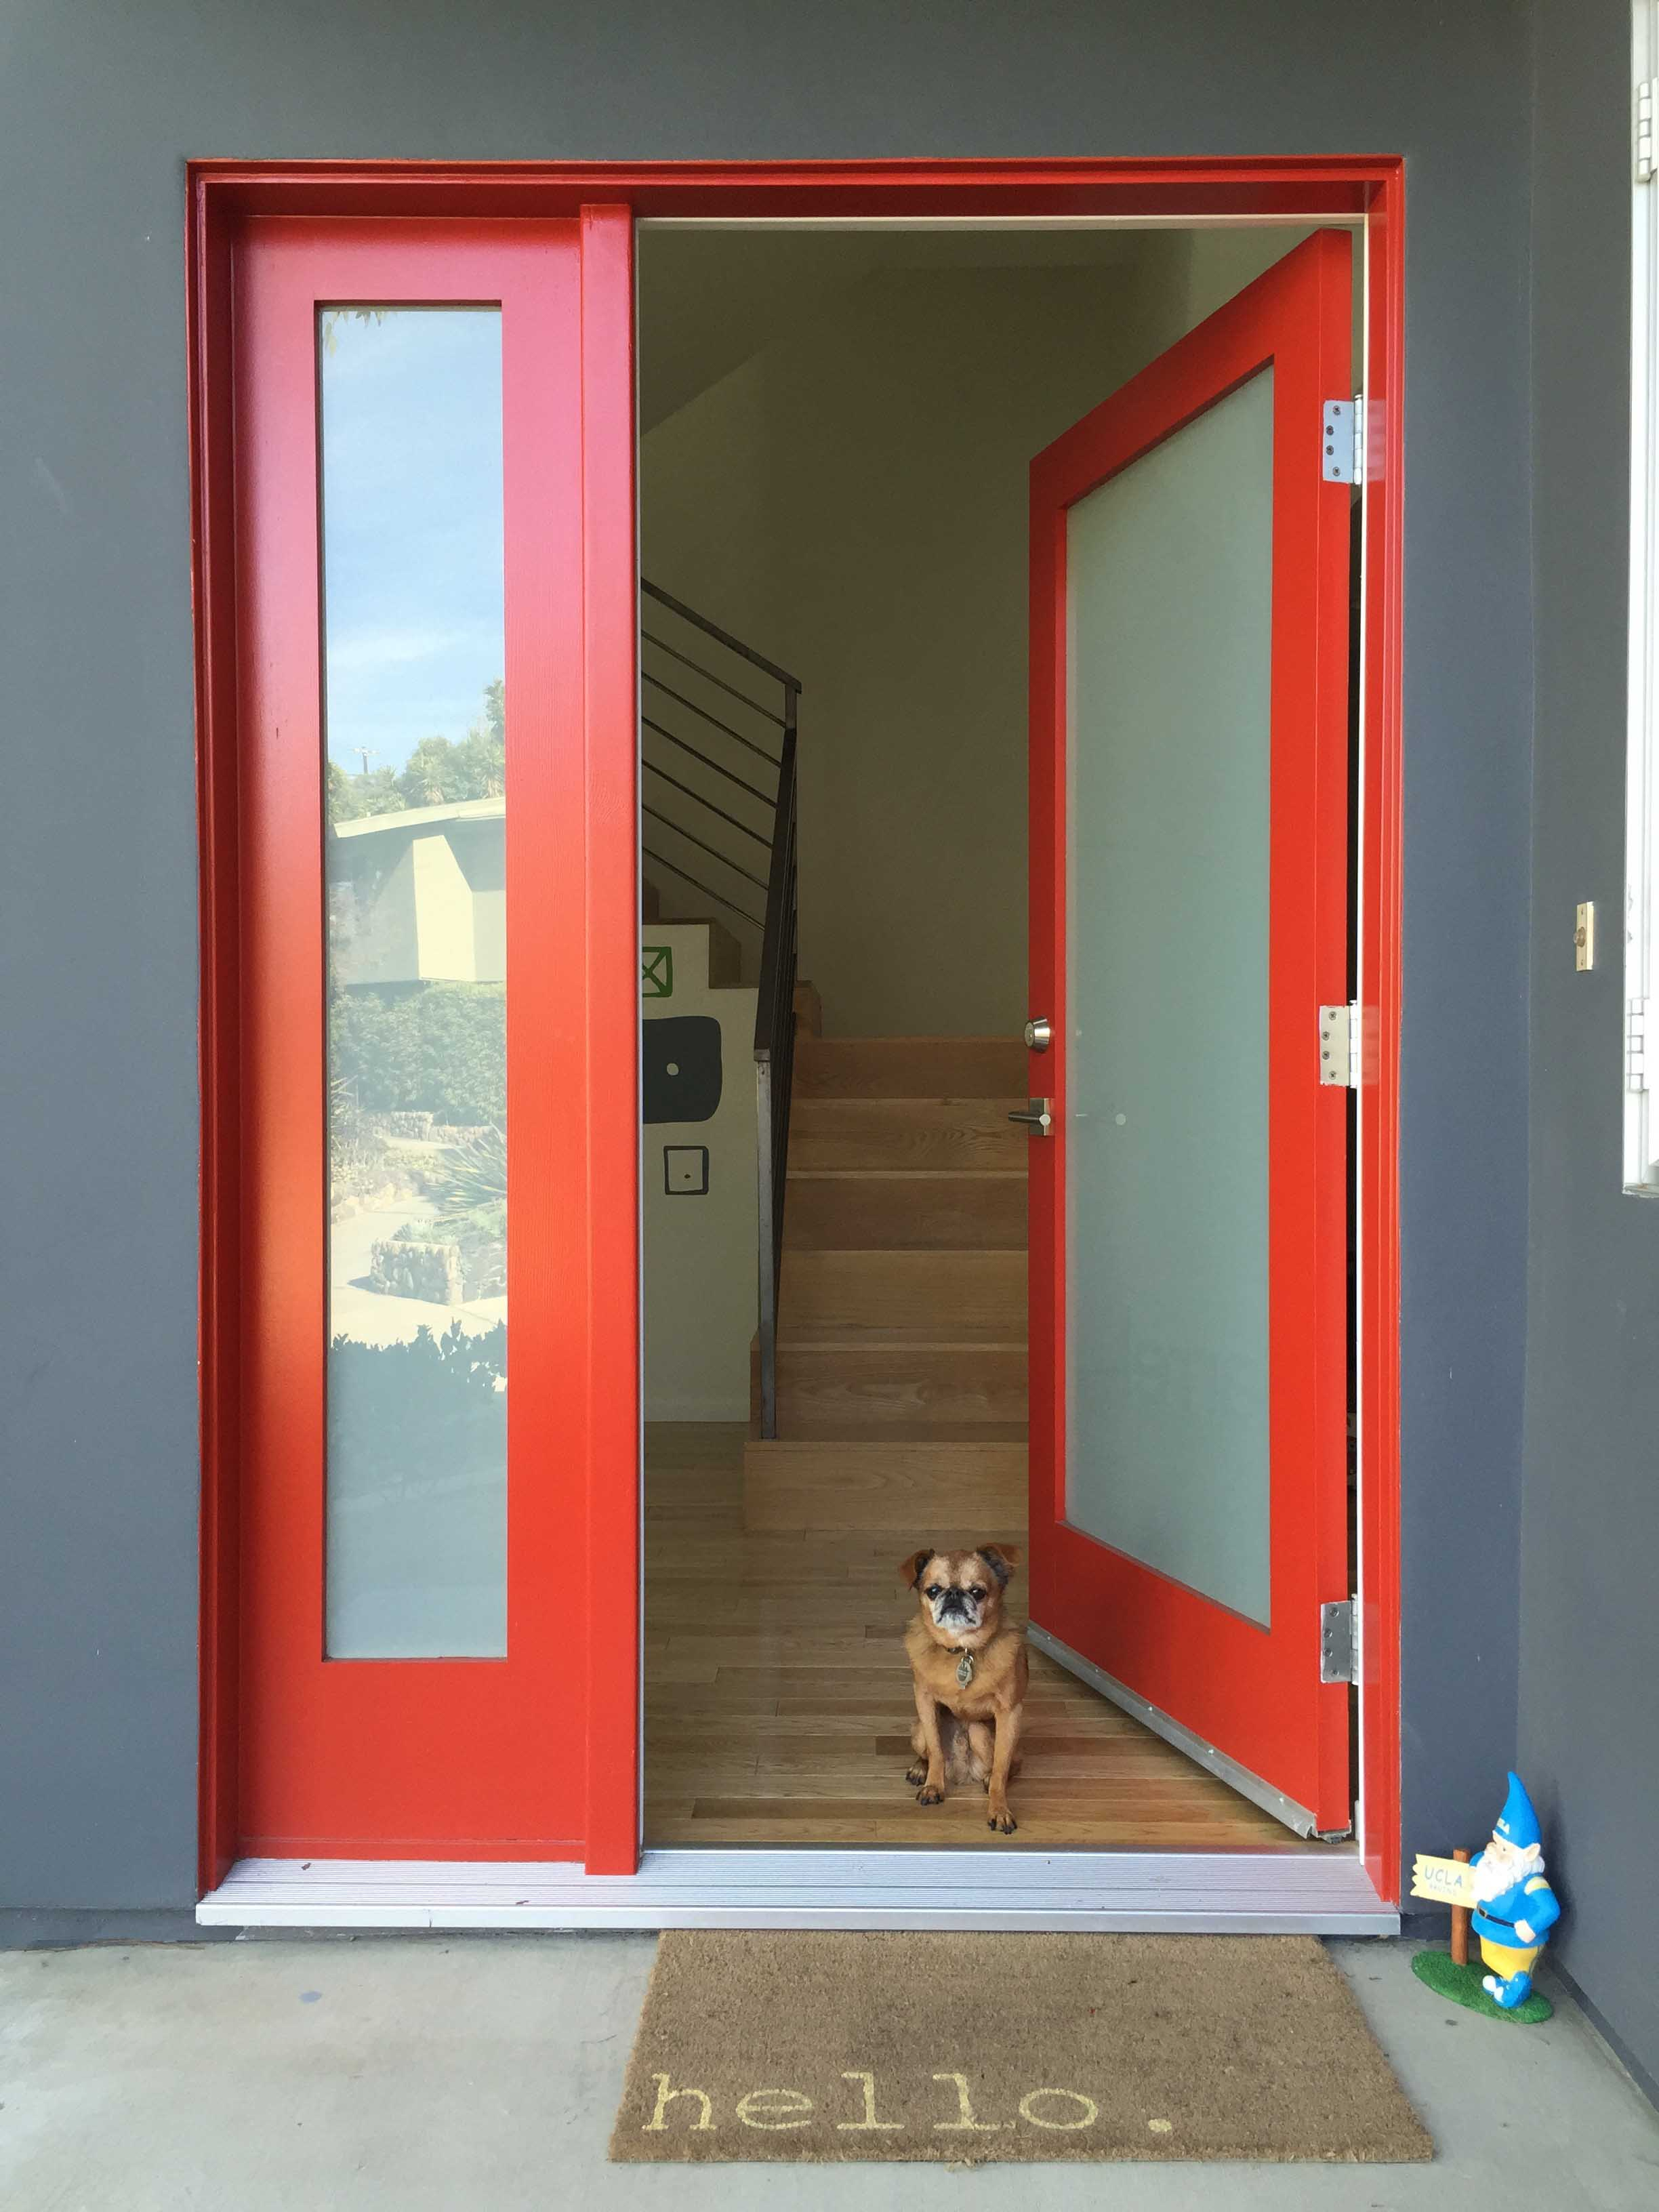 Red front door with a dog